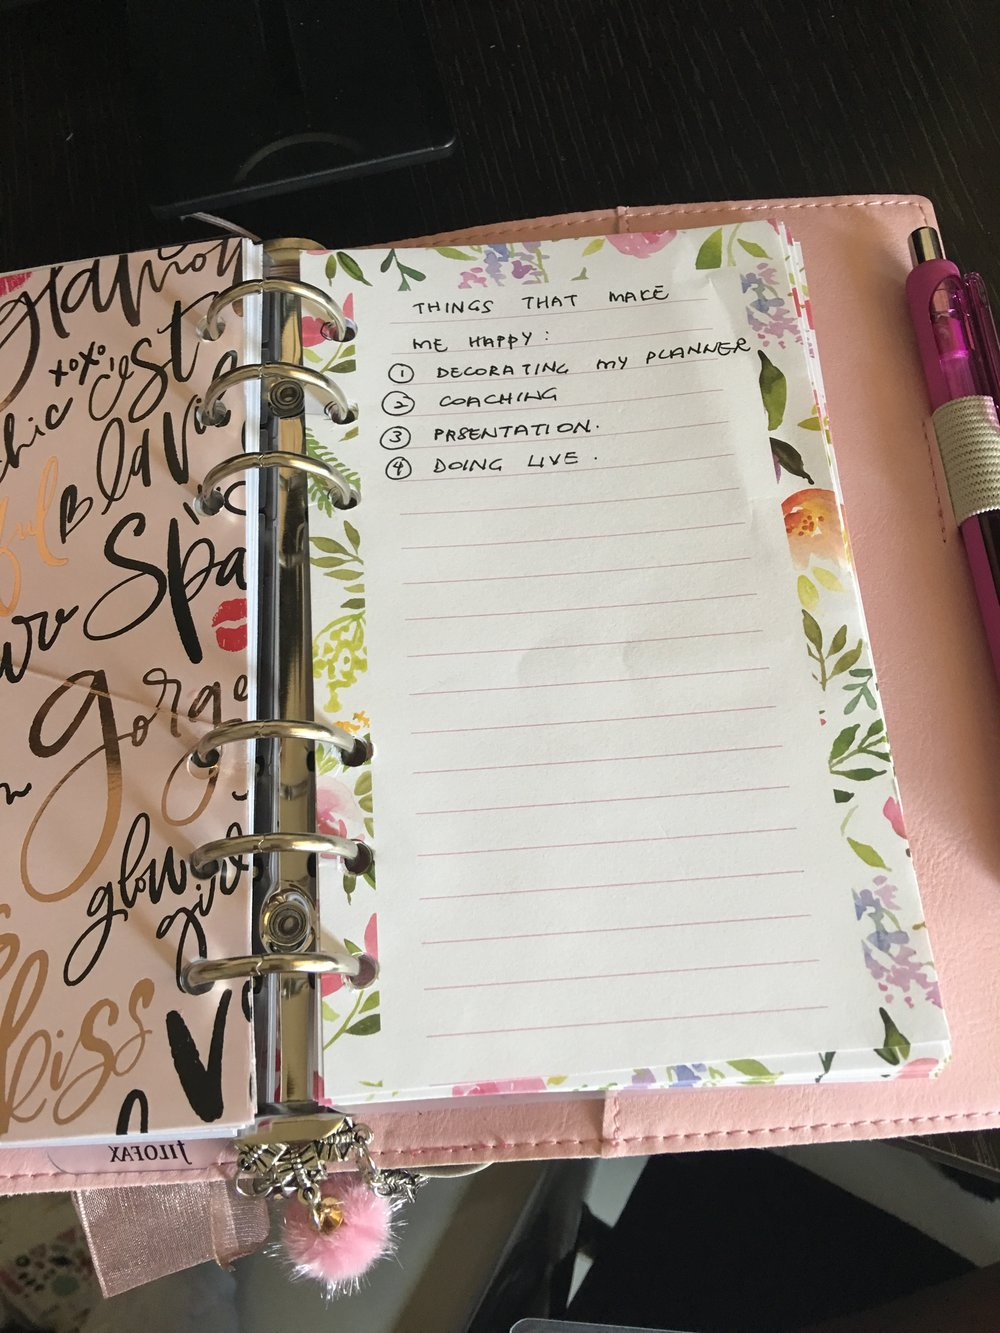 A pretty notepad that I cut, punch holes & inserted in the planner